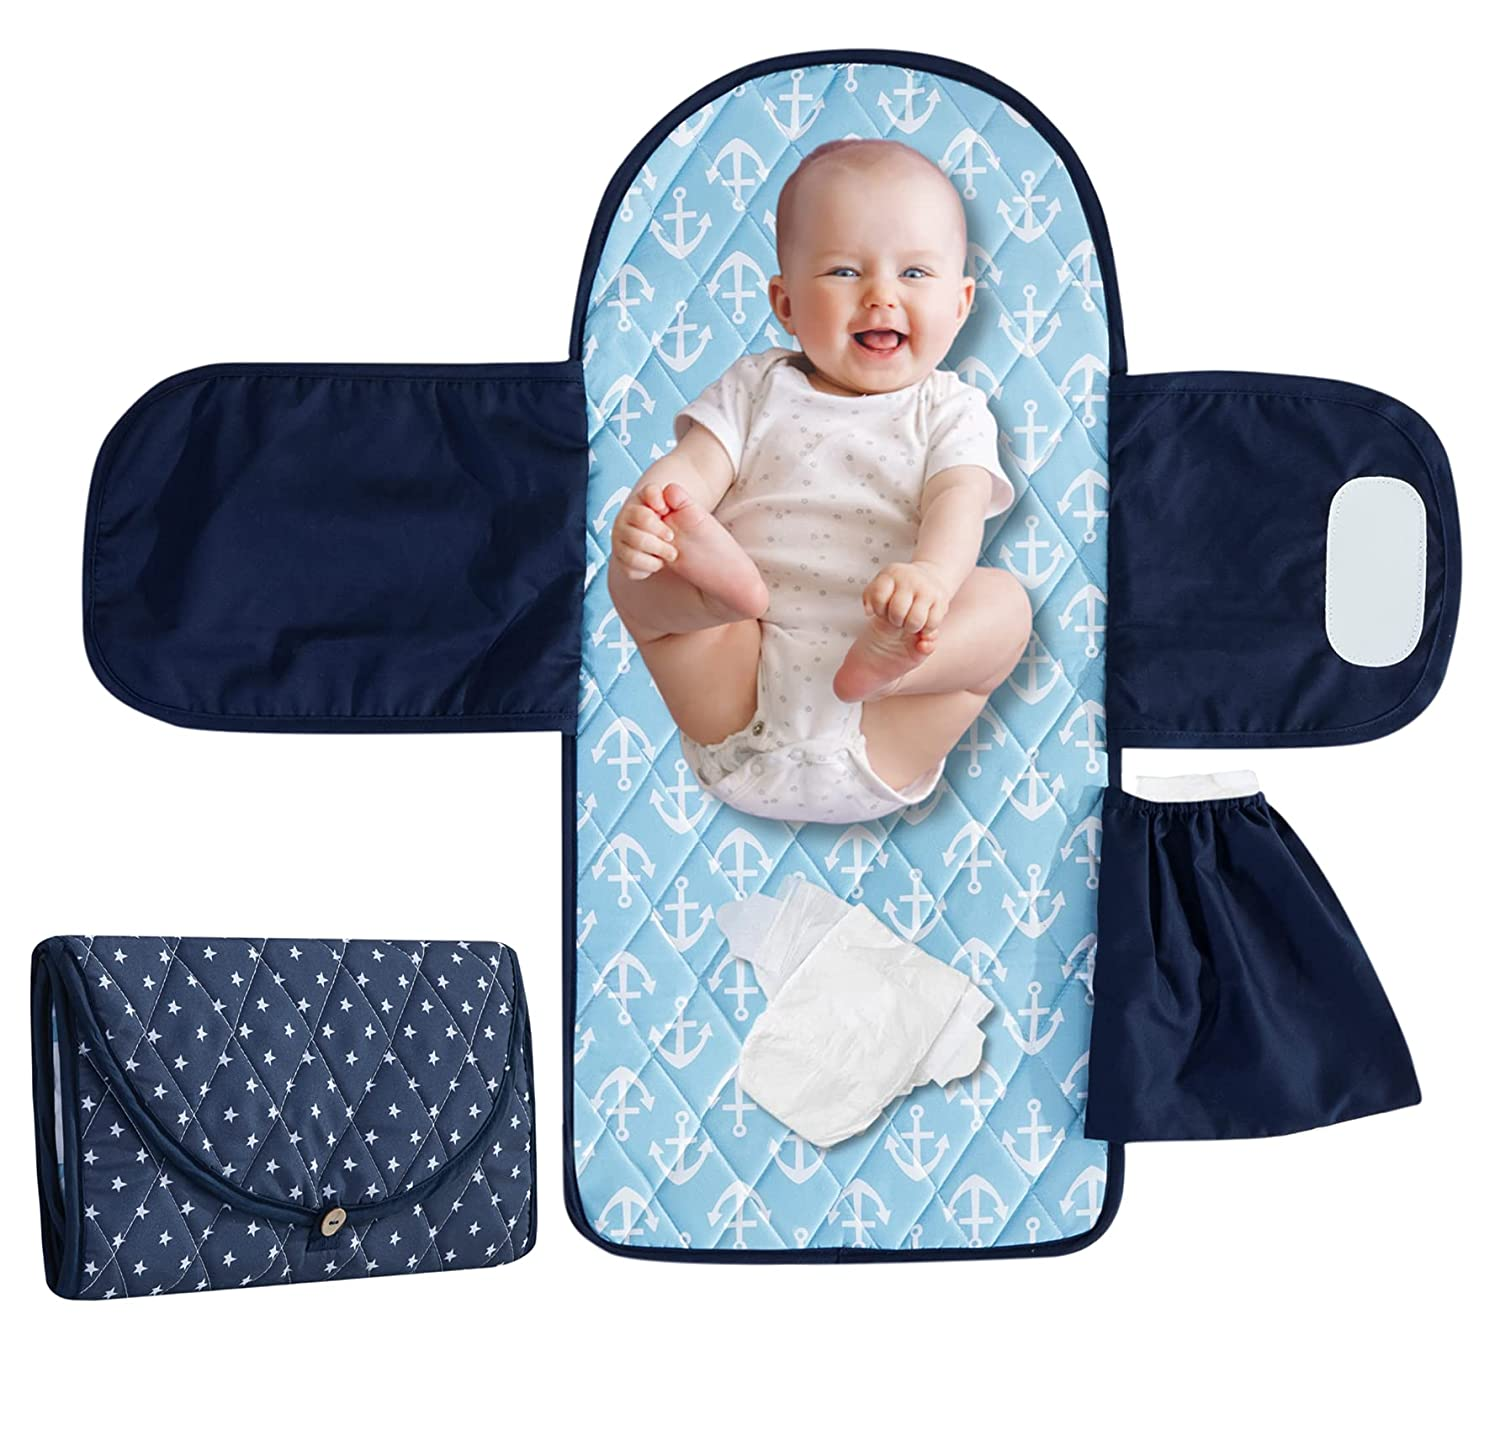 Baby Special price for Ranking TOP4 a limited time Portable Changing Pad Waterproof Soft